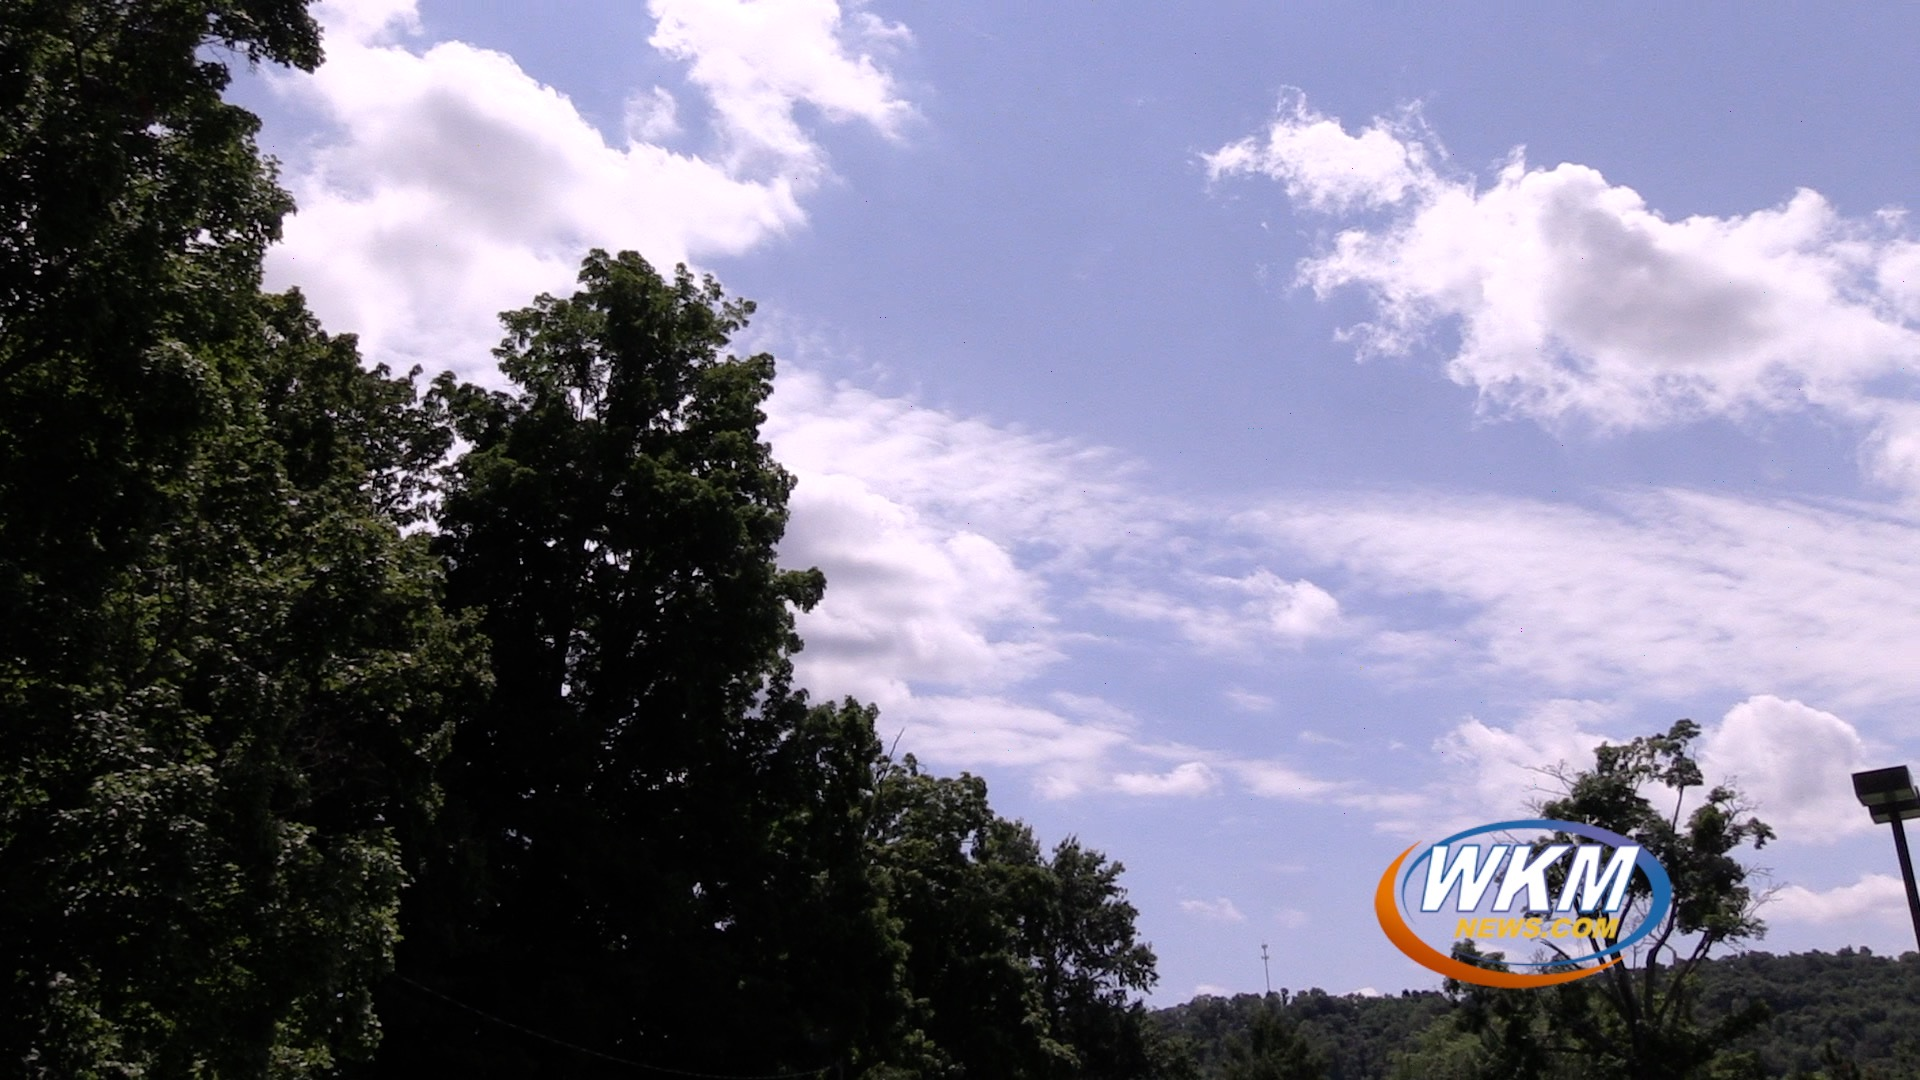 Here's Your WKM News Four Day Weekend Weather Forecast!